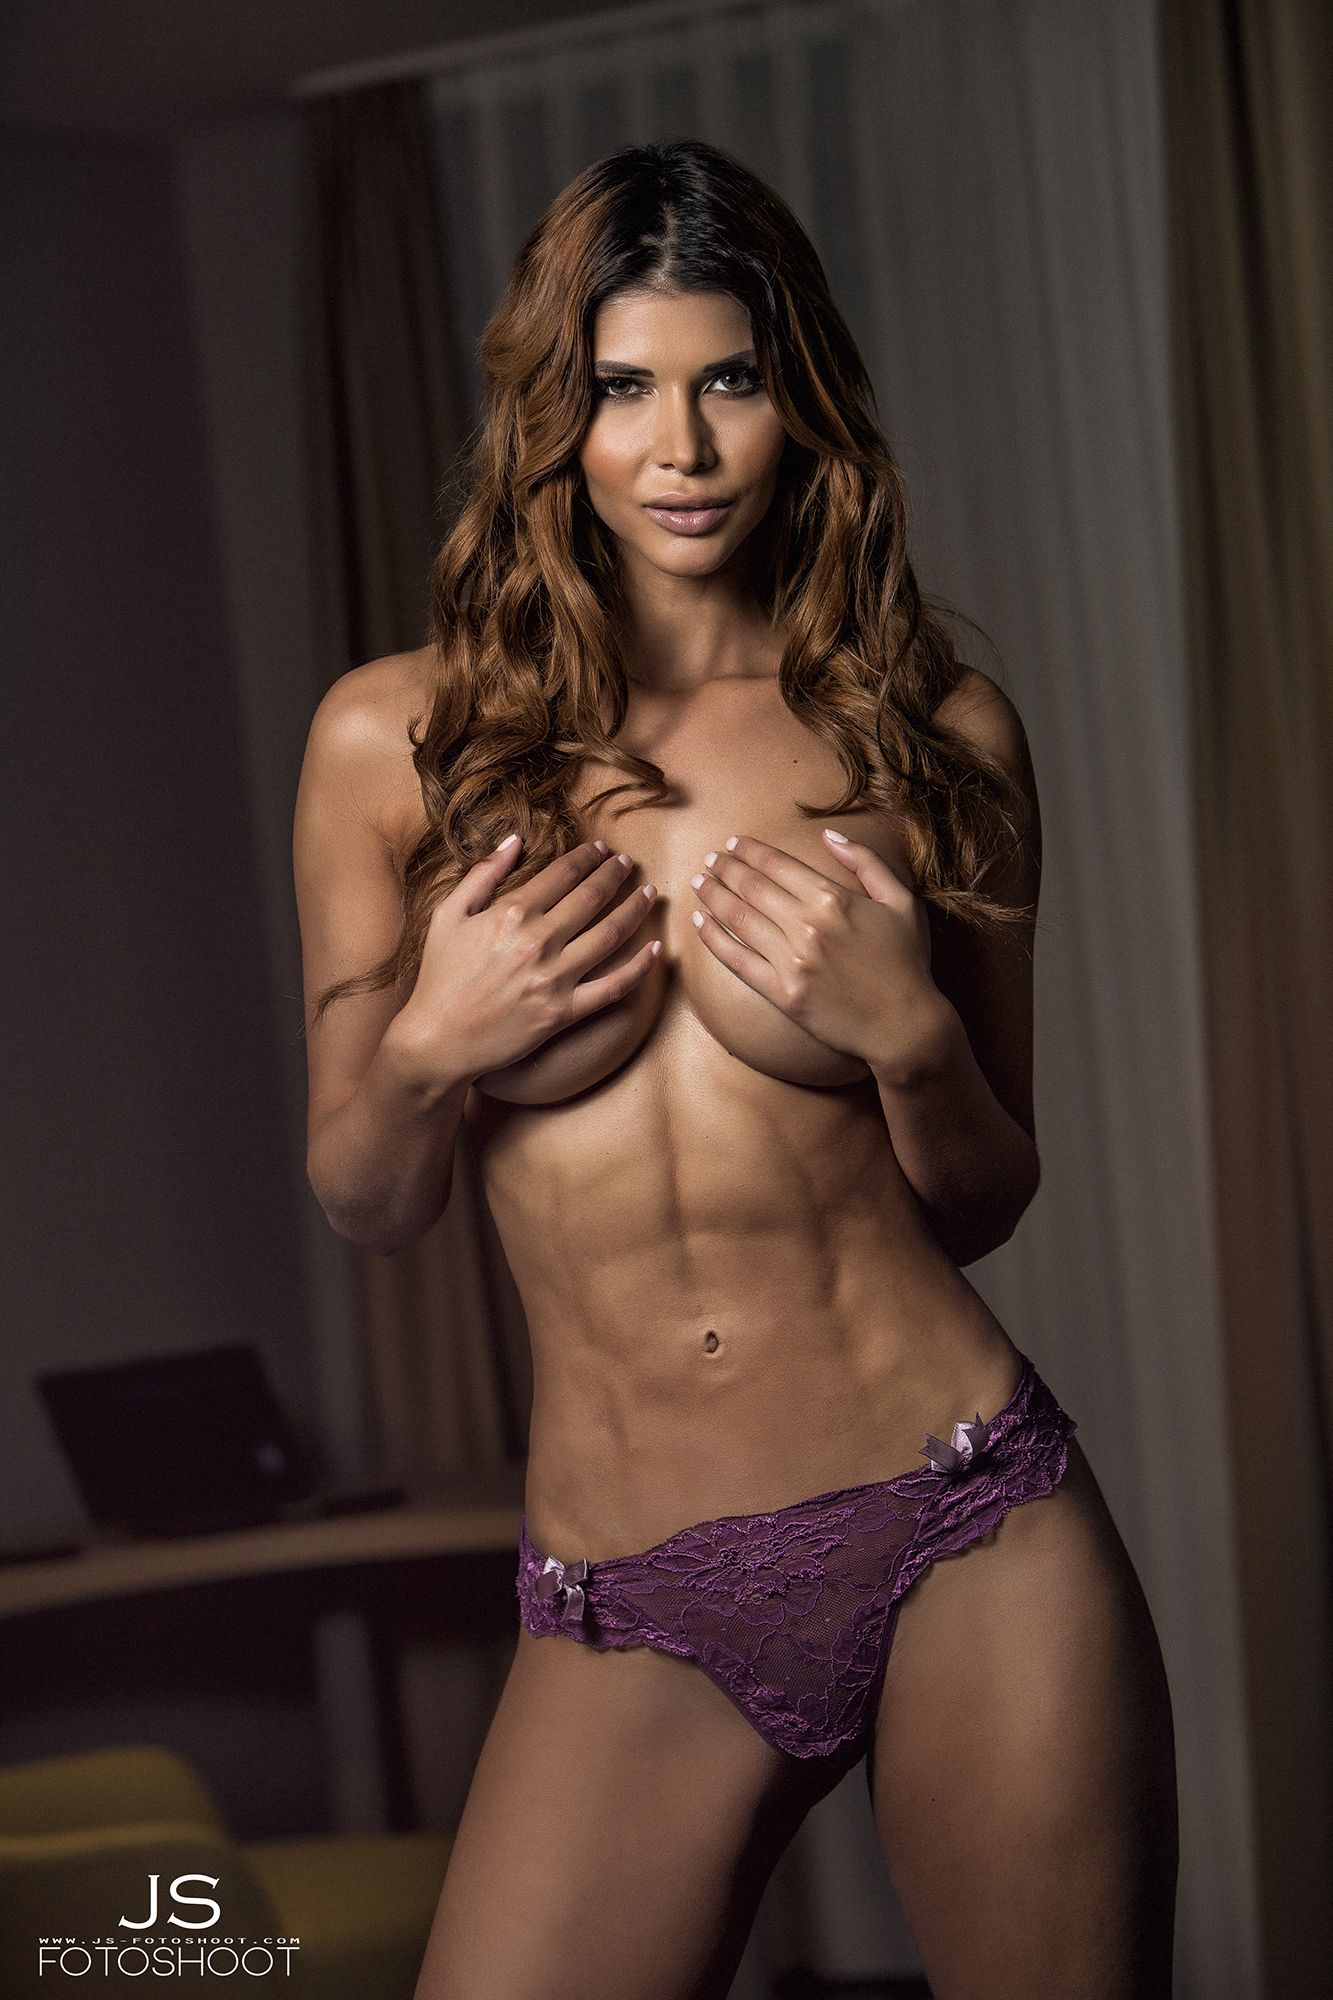 Micaela SchC3A4fer Sexy Topless 5 Thefappening.s